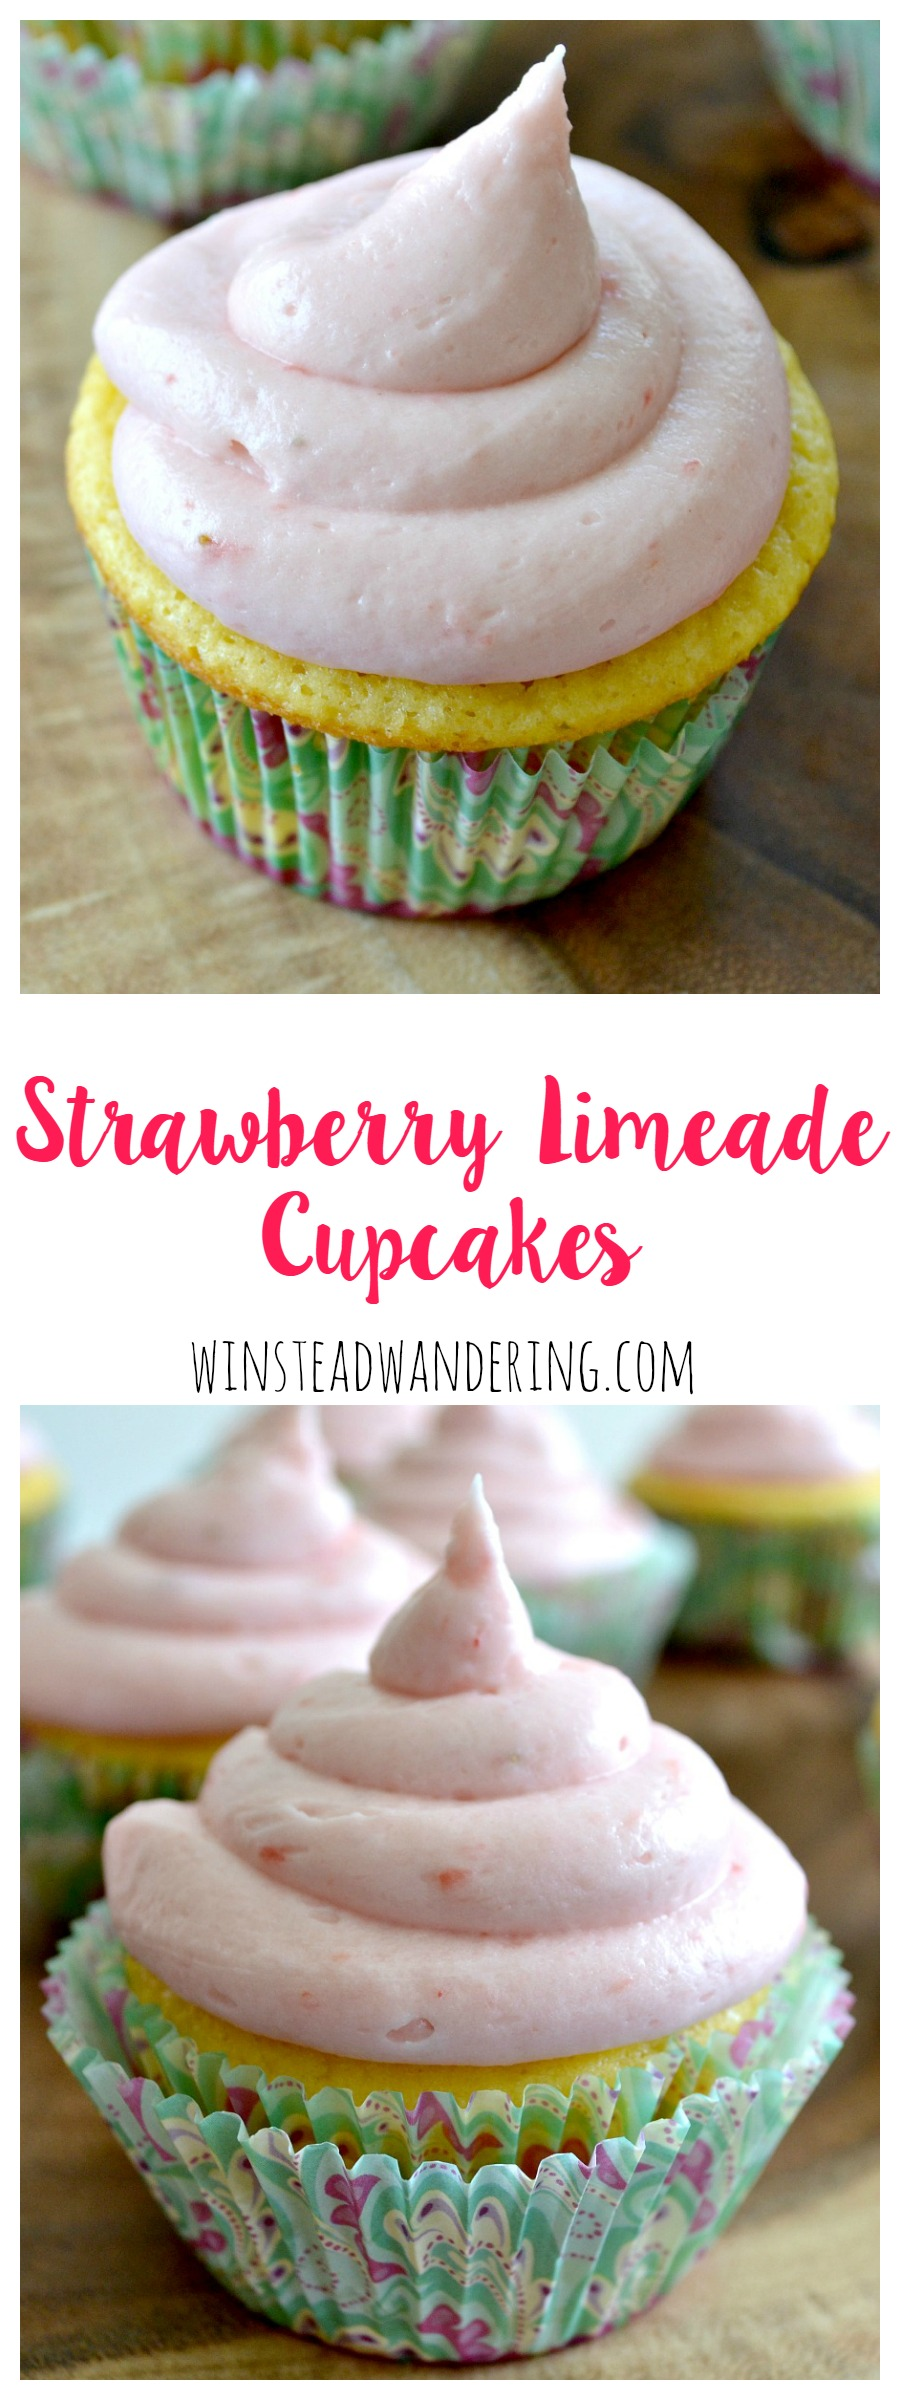 The perfect balance of tart and sweet, these strawberry limeade cupcakes are a refreshing treat for just about any occasion.